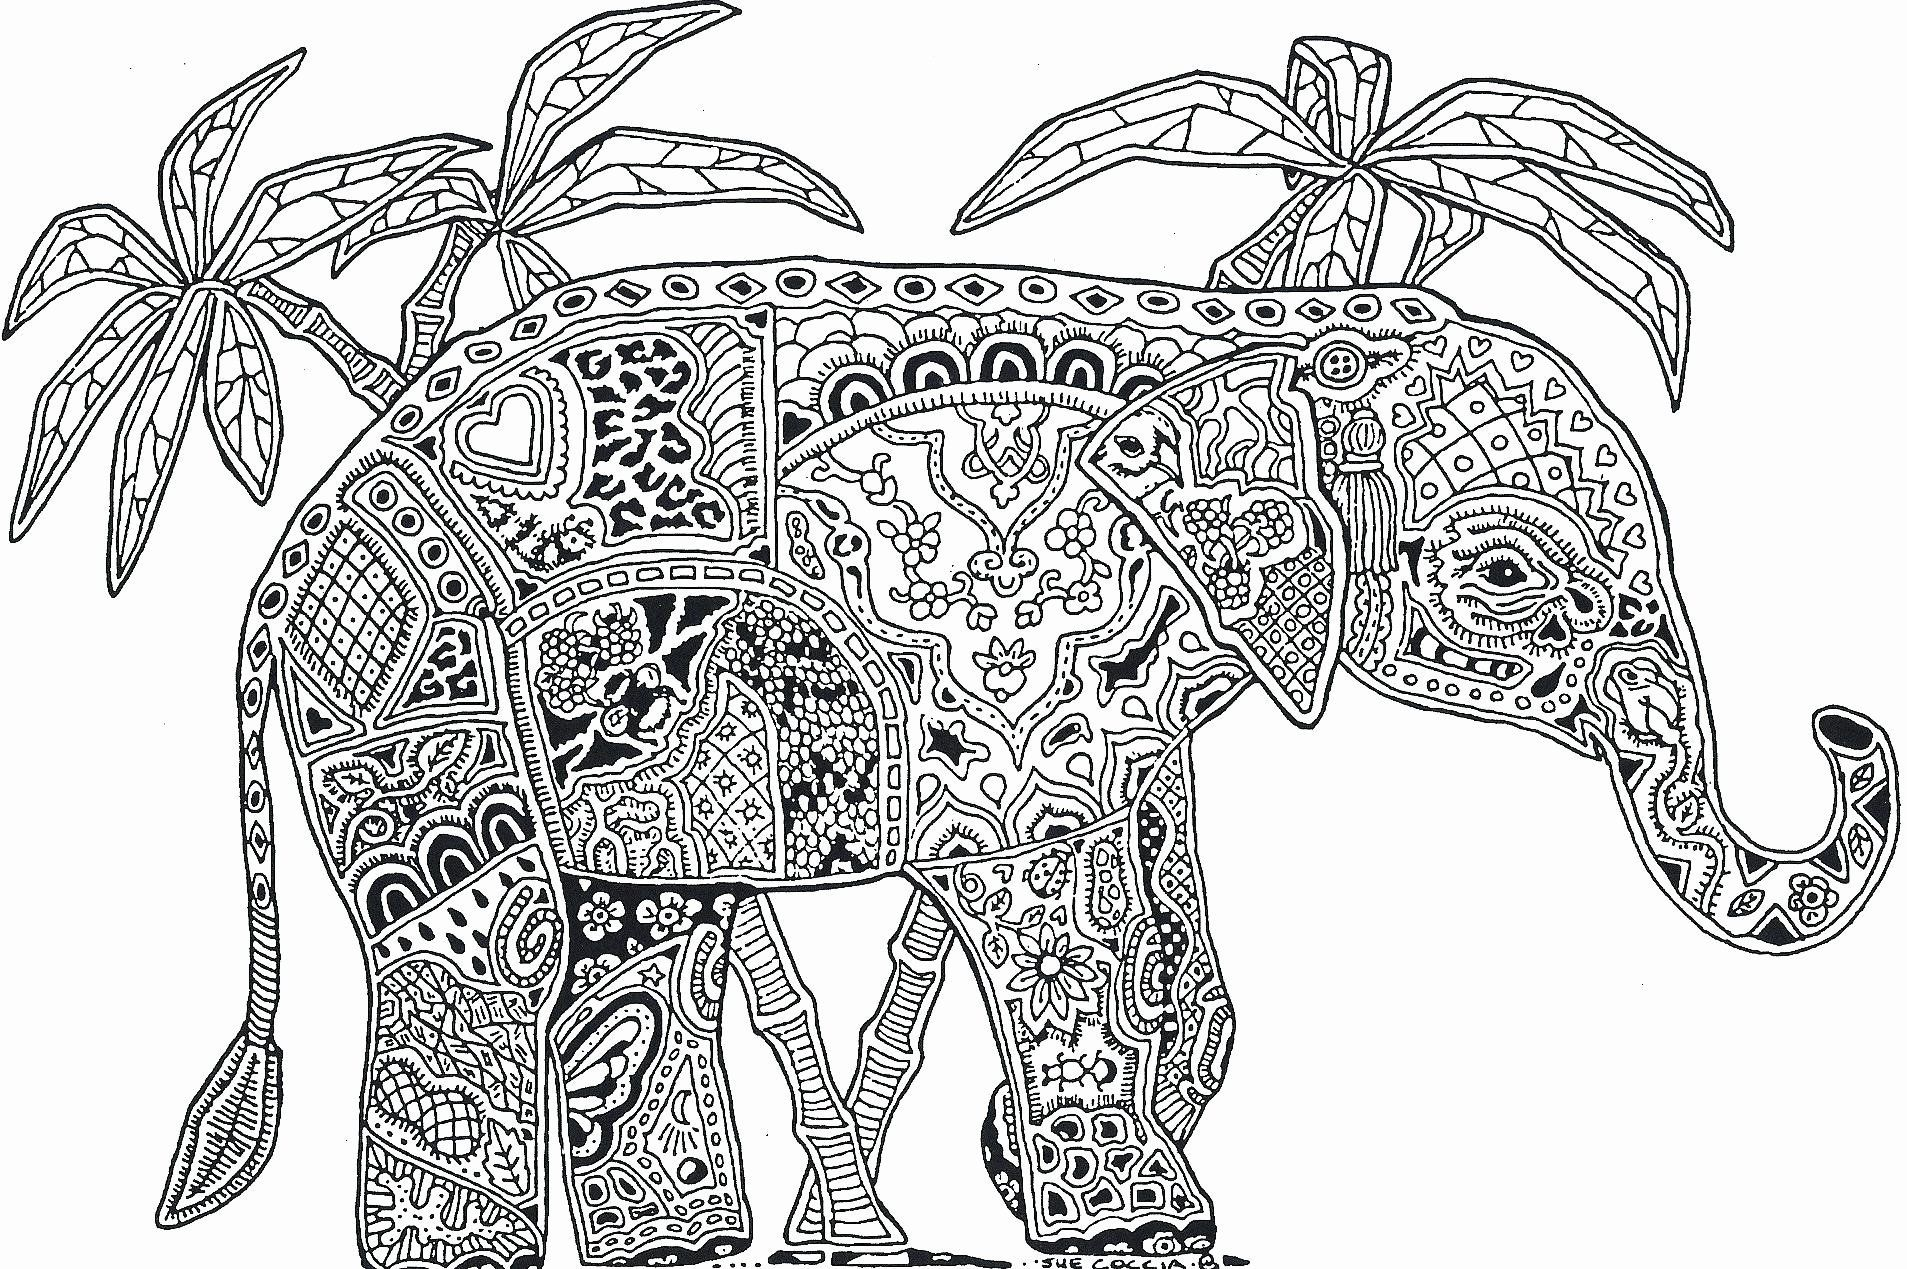 Hard Coloring Pictures Of Animals Luxury Coloring Pages Hard Animals Gallery Coloring For In 2020 Elephant Coloring Page Detailed Coloring Pages Animal Coloring Pages